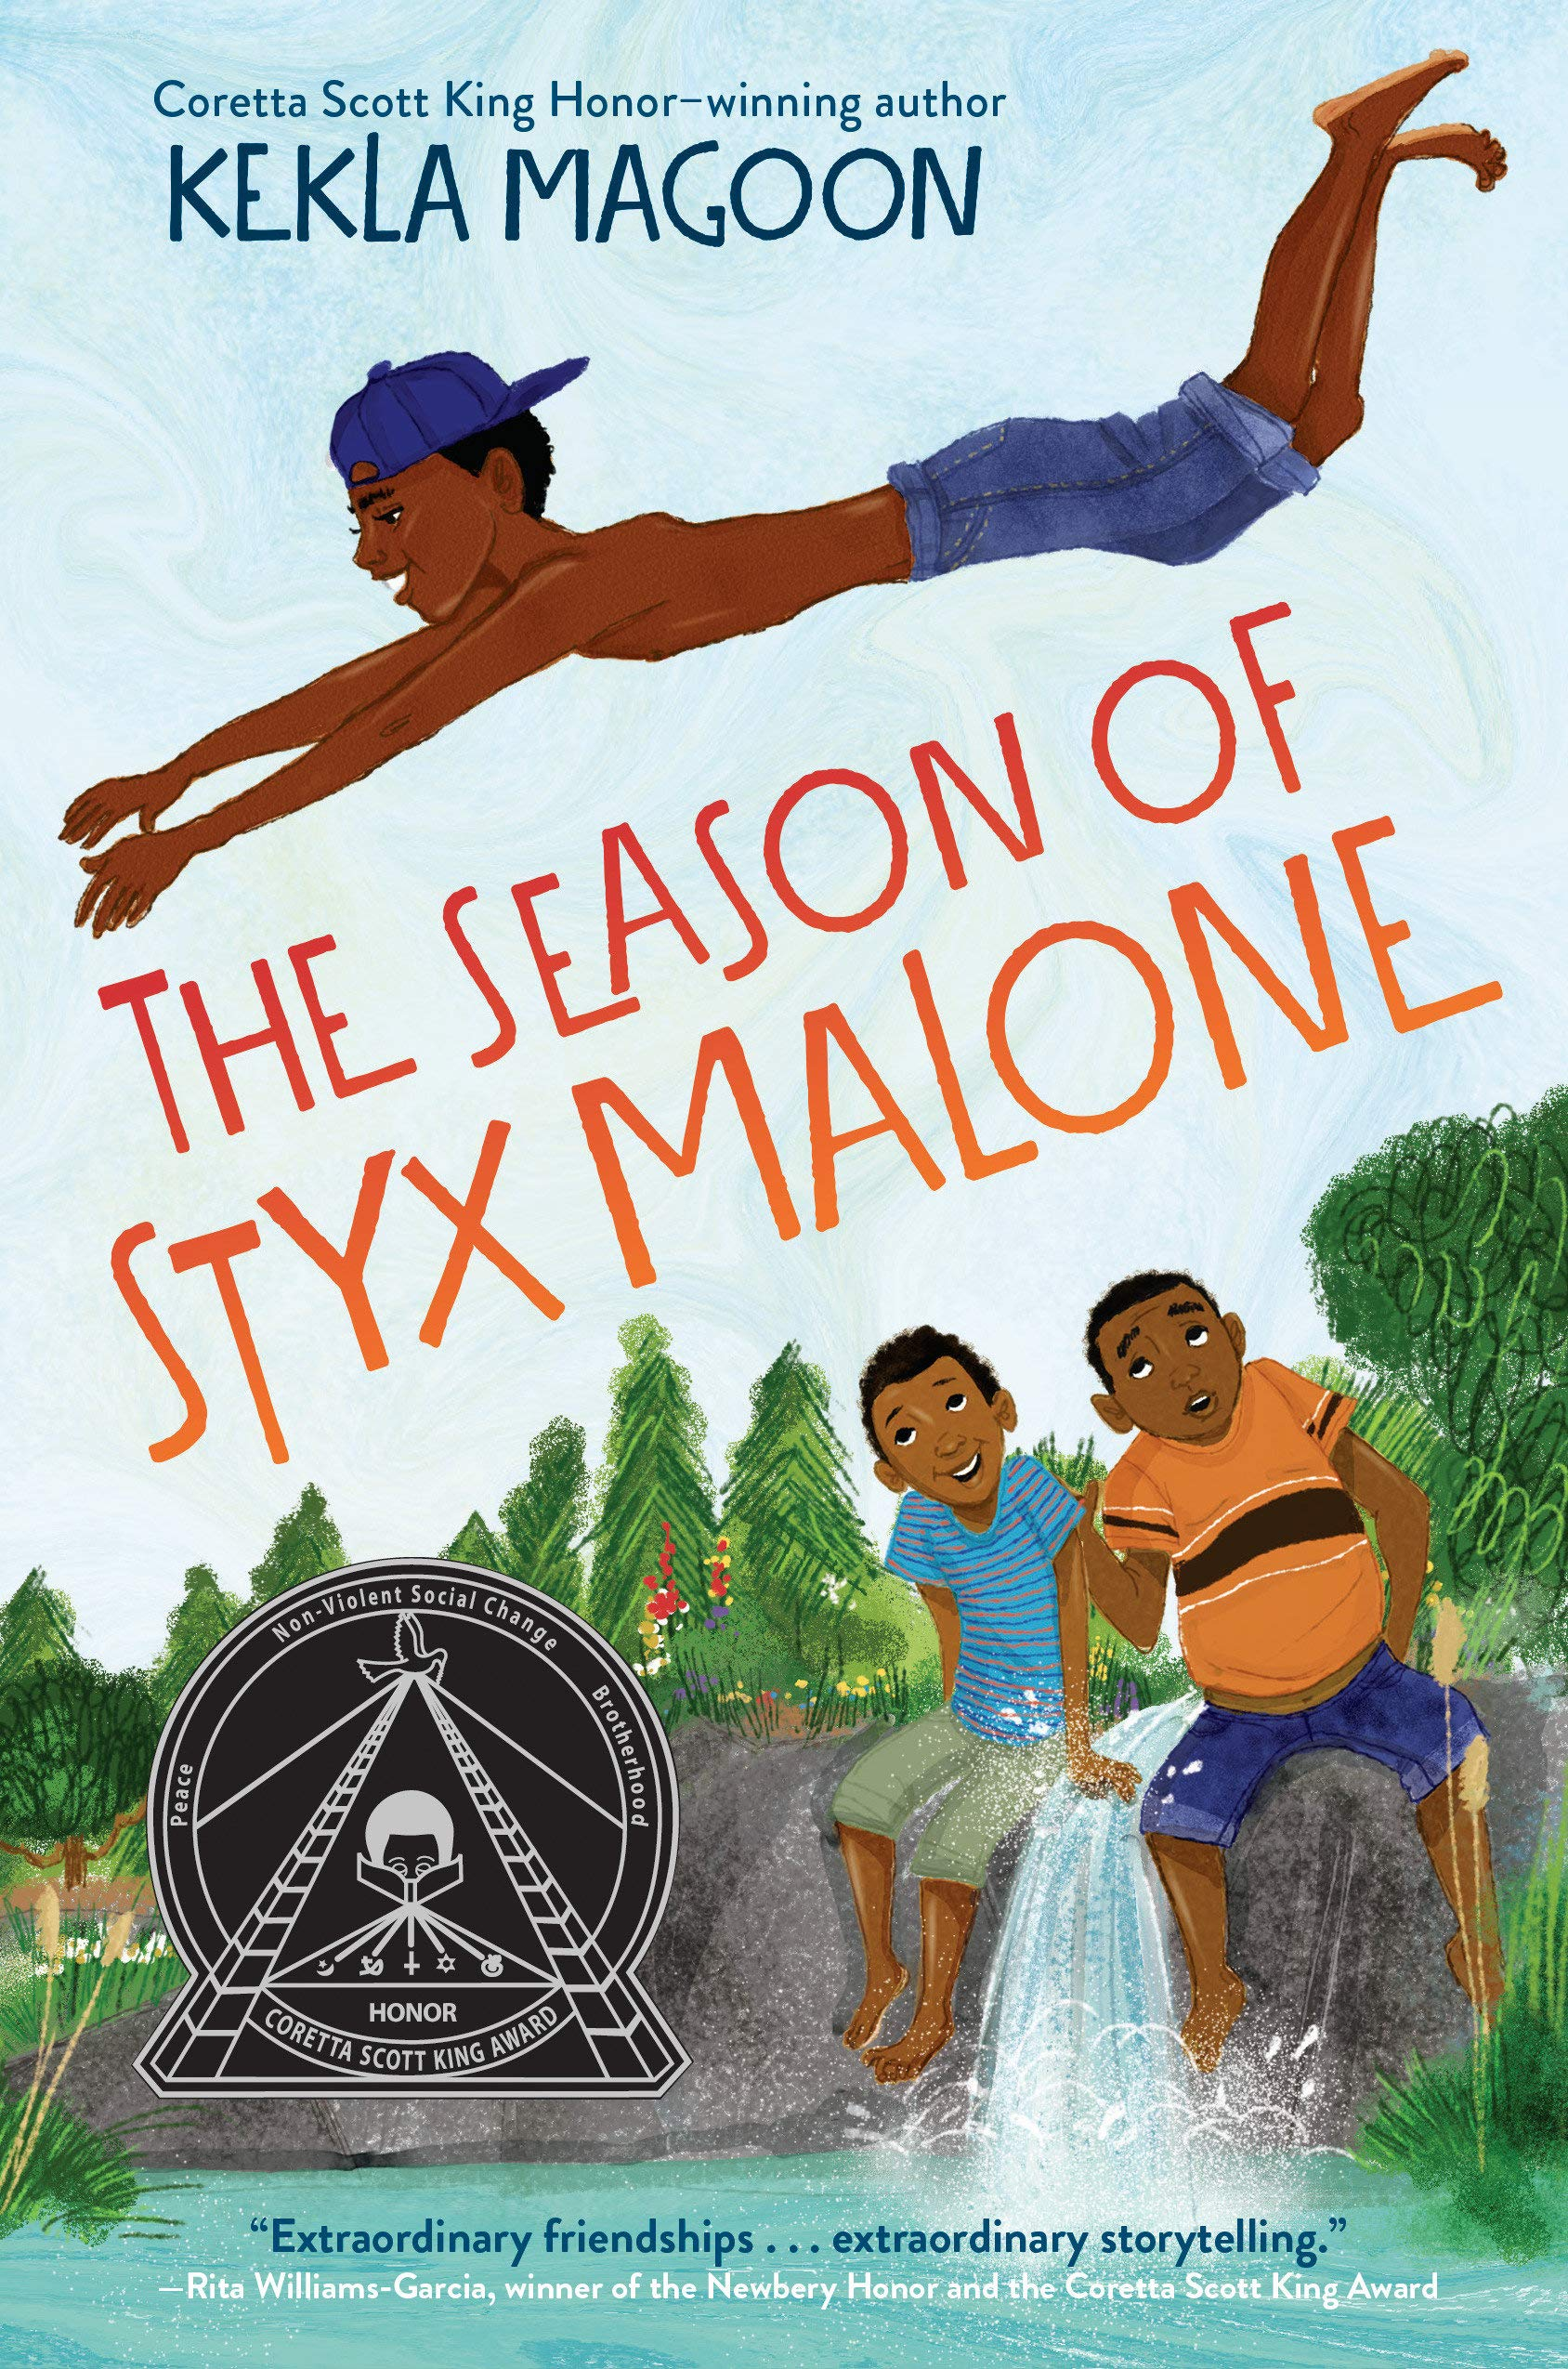 The Season of Styx Malone: Looking at Characterization in a Mentor Text